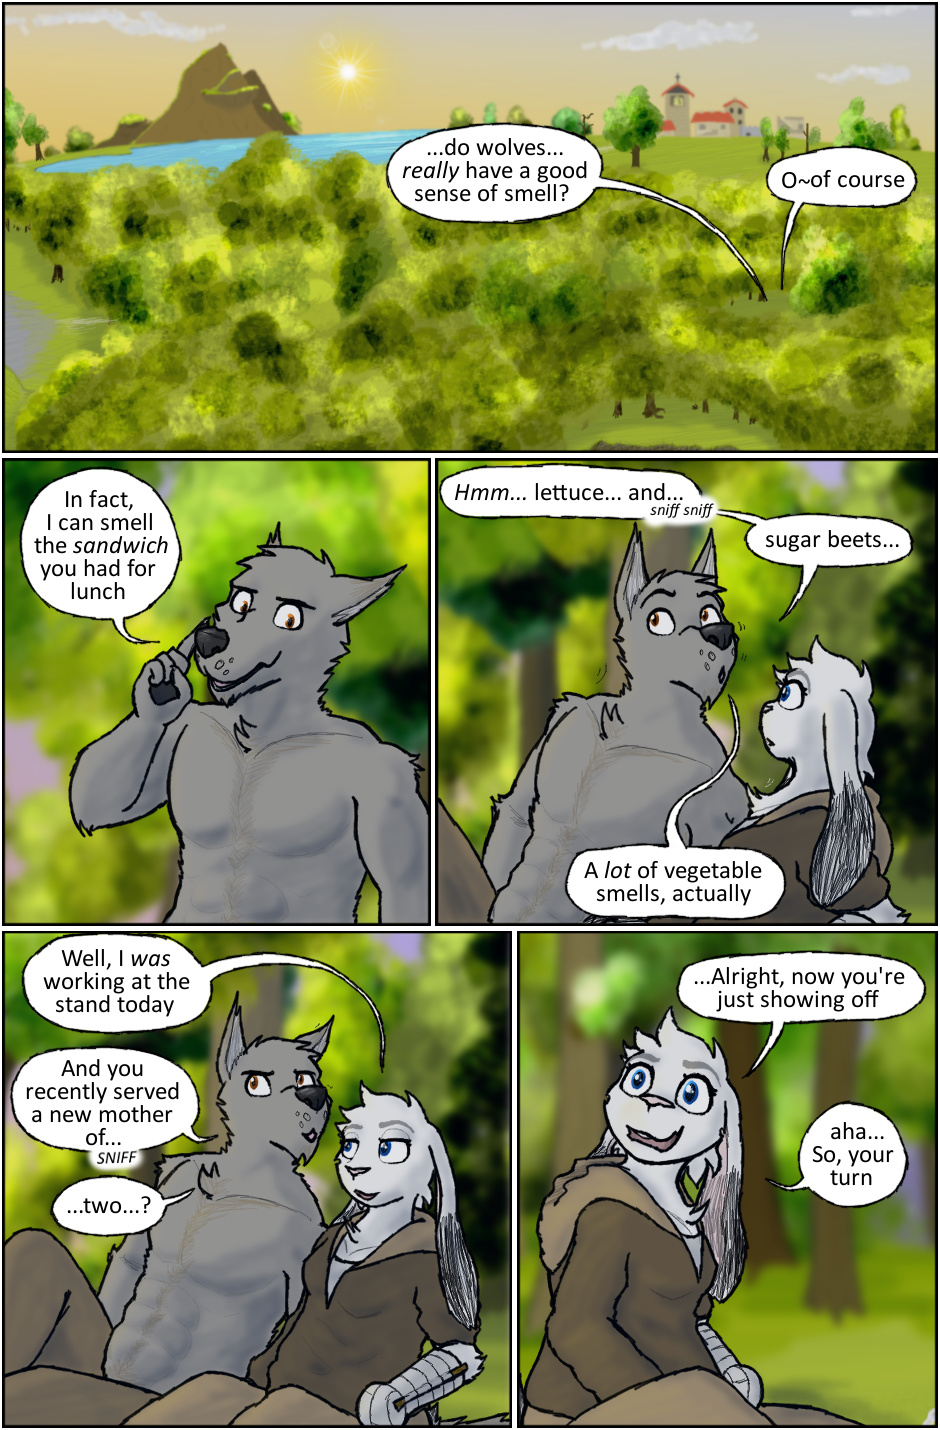 Page 88 - The Old Sniffer